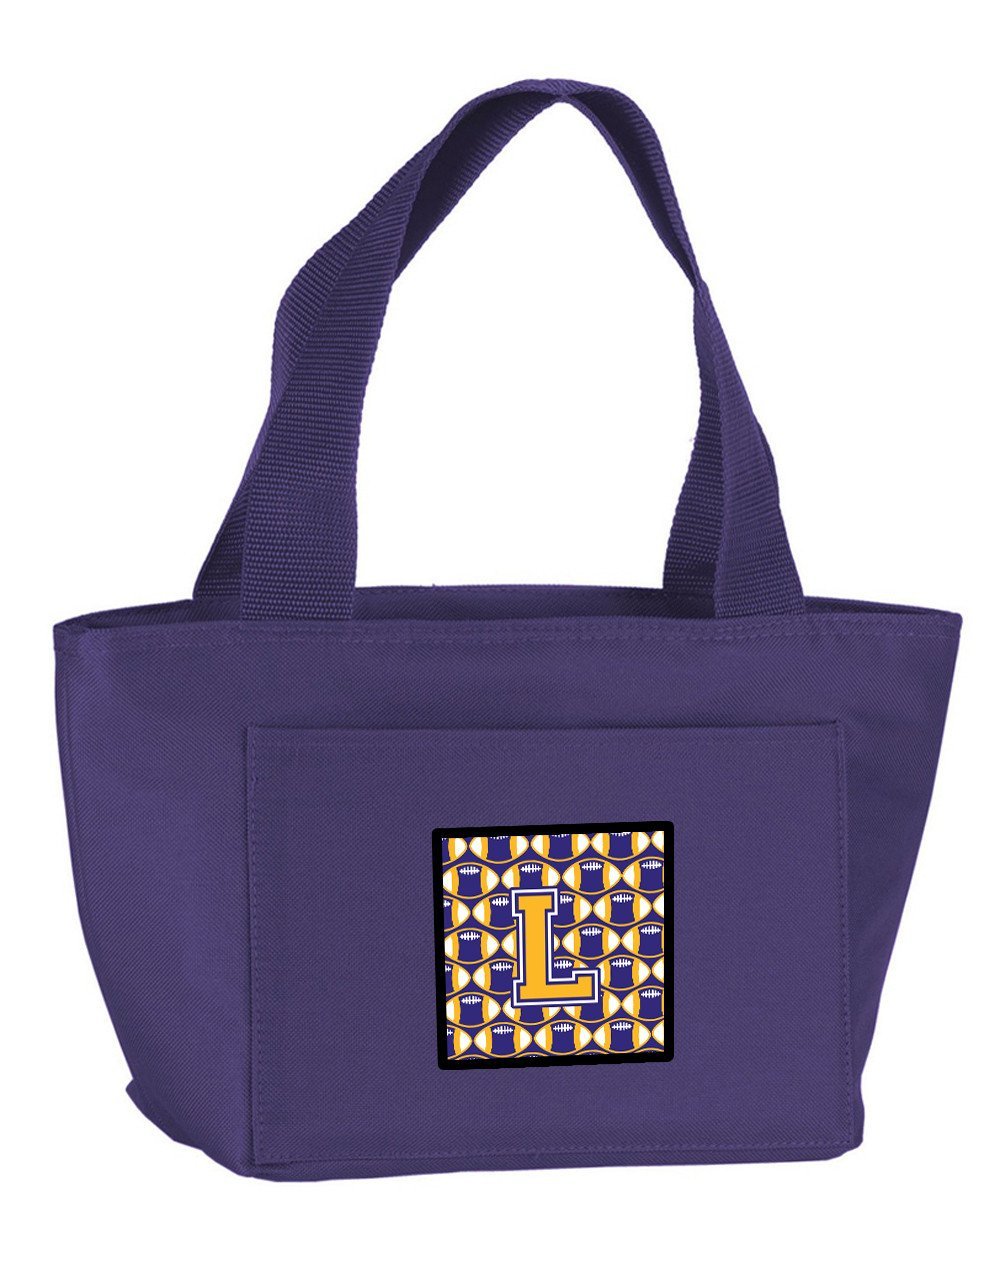 Letter L Football Purple and Gold Lunch Bag CJ1064-LPR-8808 by Caroline's Treasures